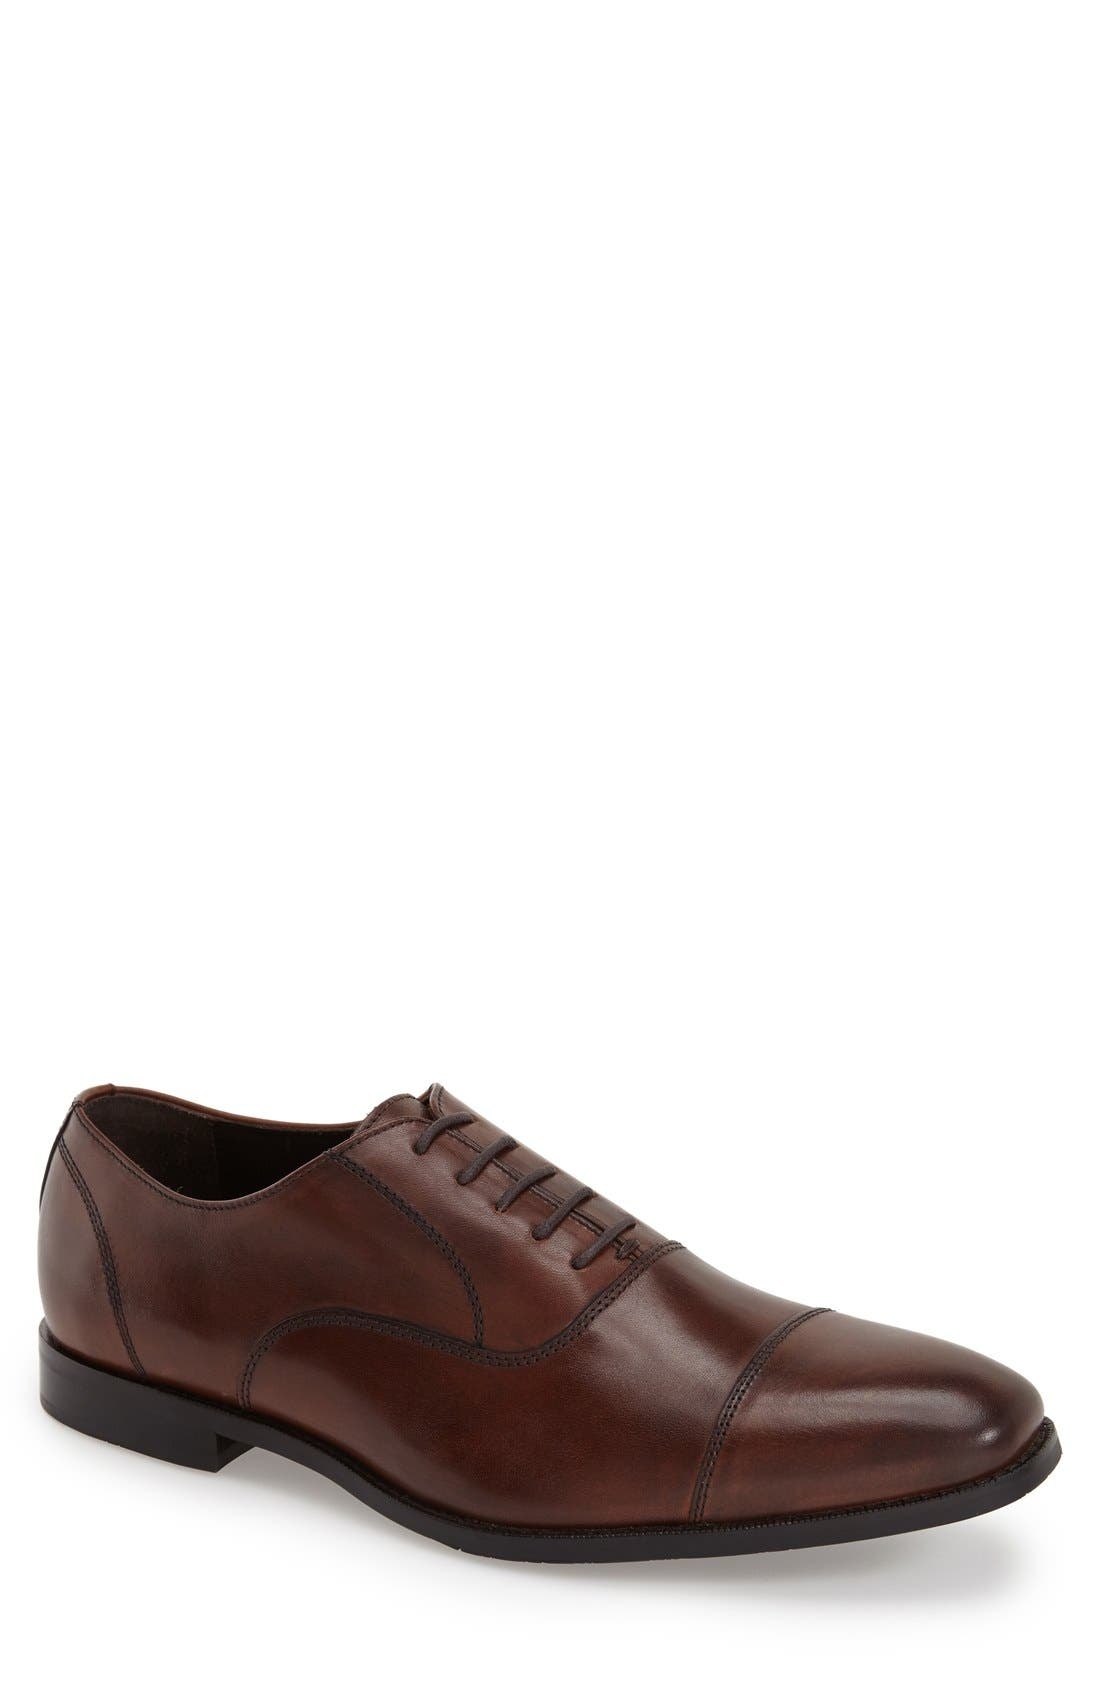 'Dillon' Cap Toe Oxford,                             Main thumbnail 1, color,                             Chestnut Leather